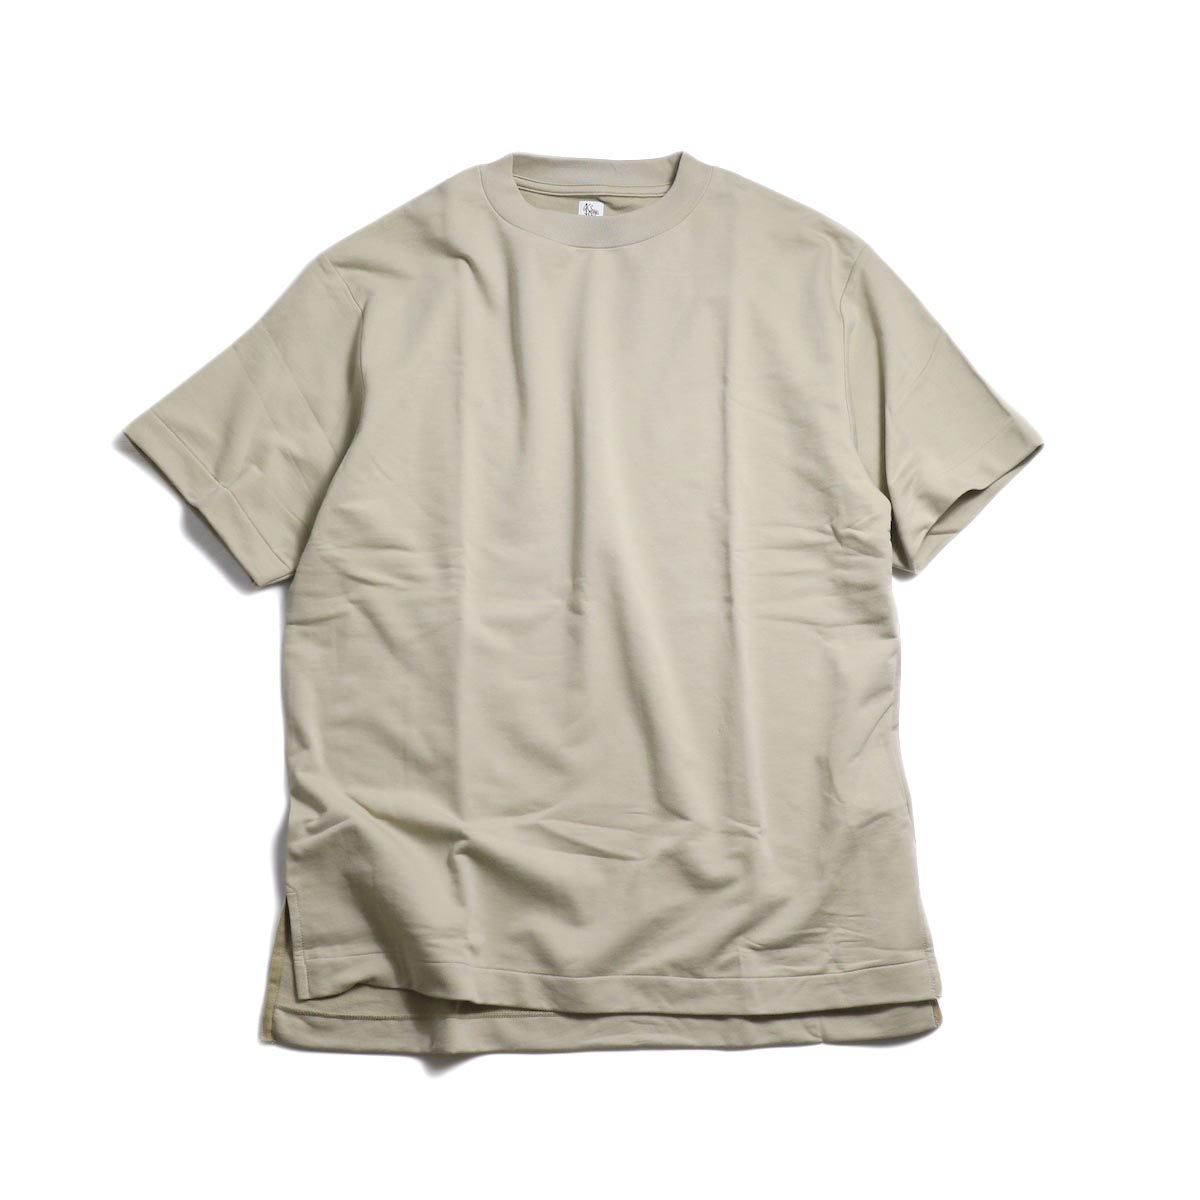 Kaptain Sunshine / Crewneck Tee -Taupe Grey